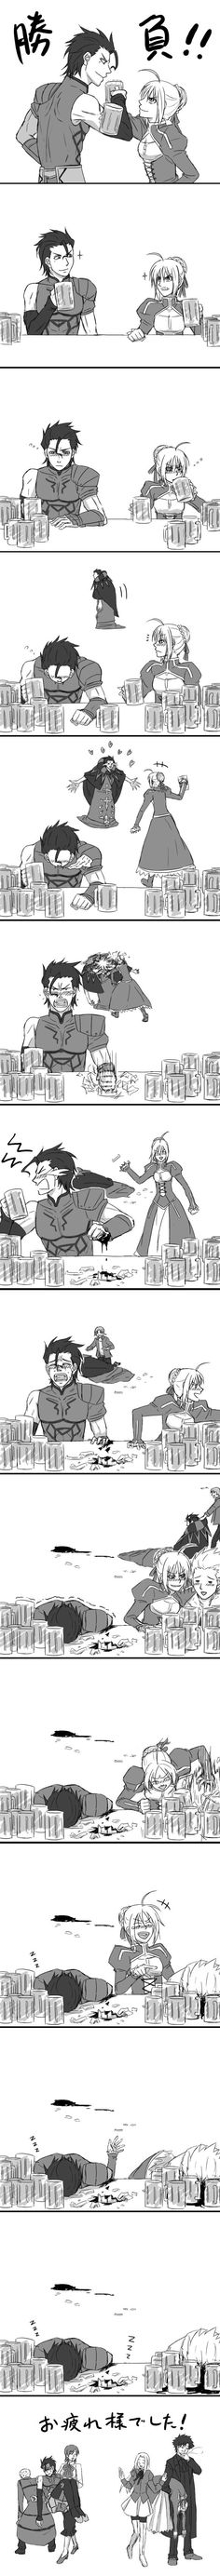 Although, I doubt Saber would stoop so low as to get drunk, this is exactly how she would act if she did get drunk.